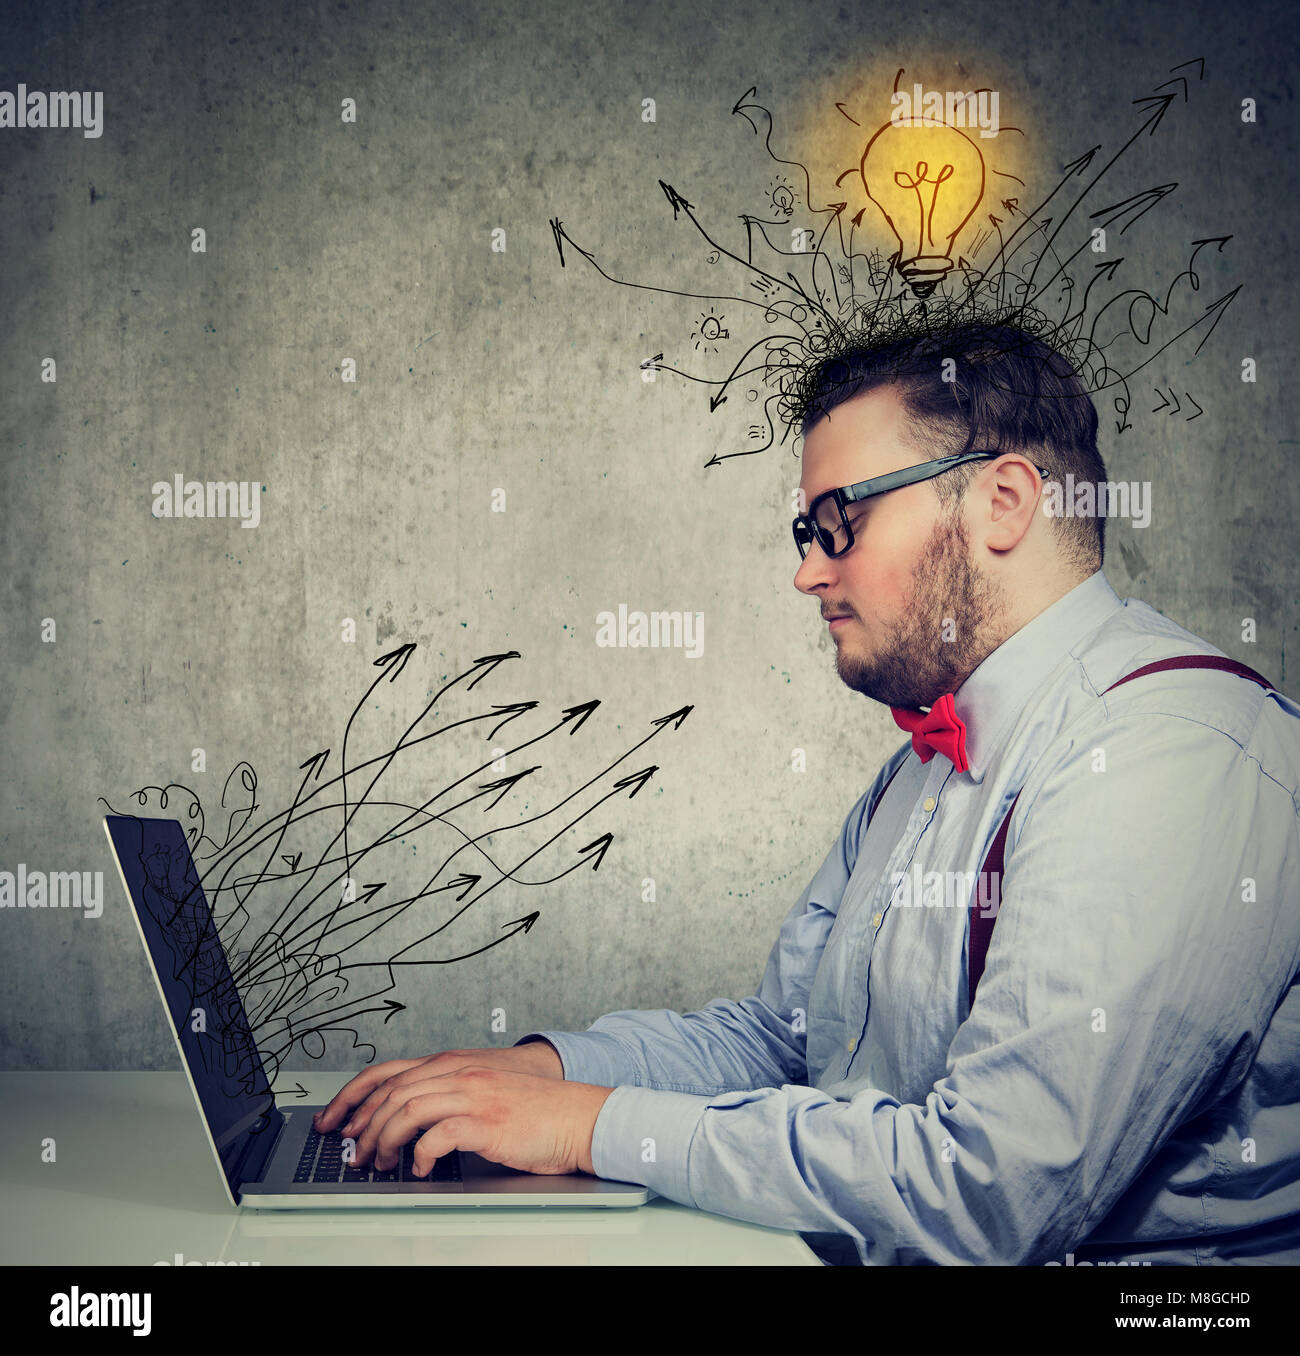 young business man working on laptop has bright ideas - Stock Image